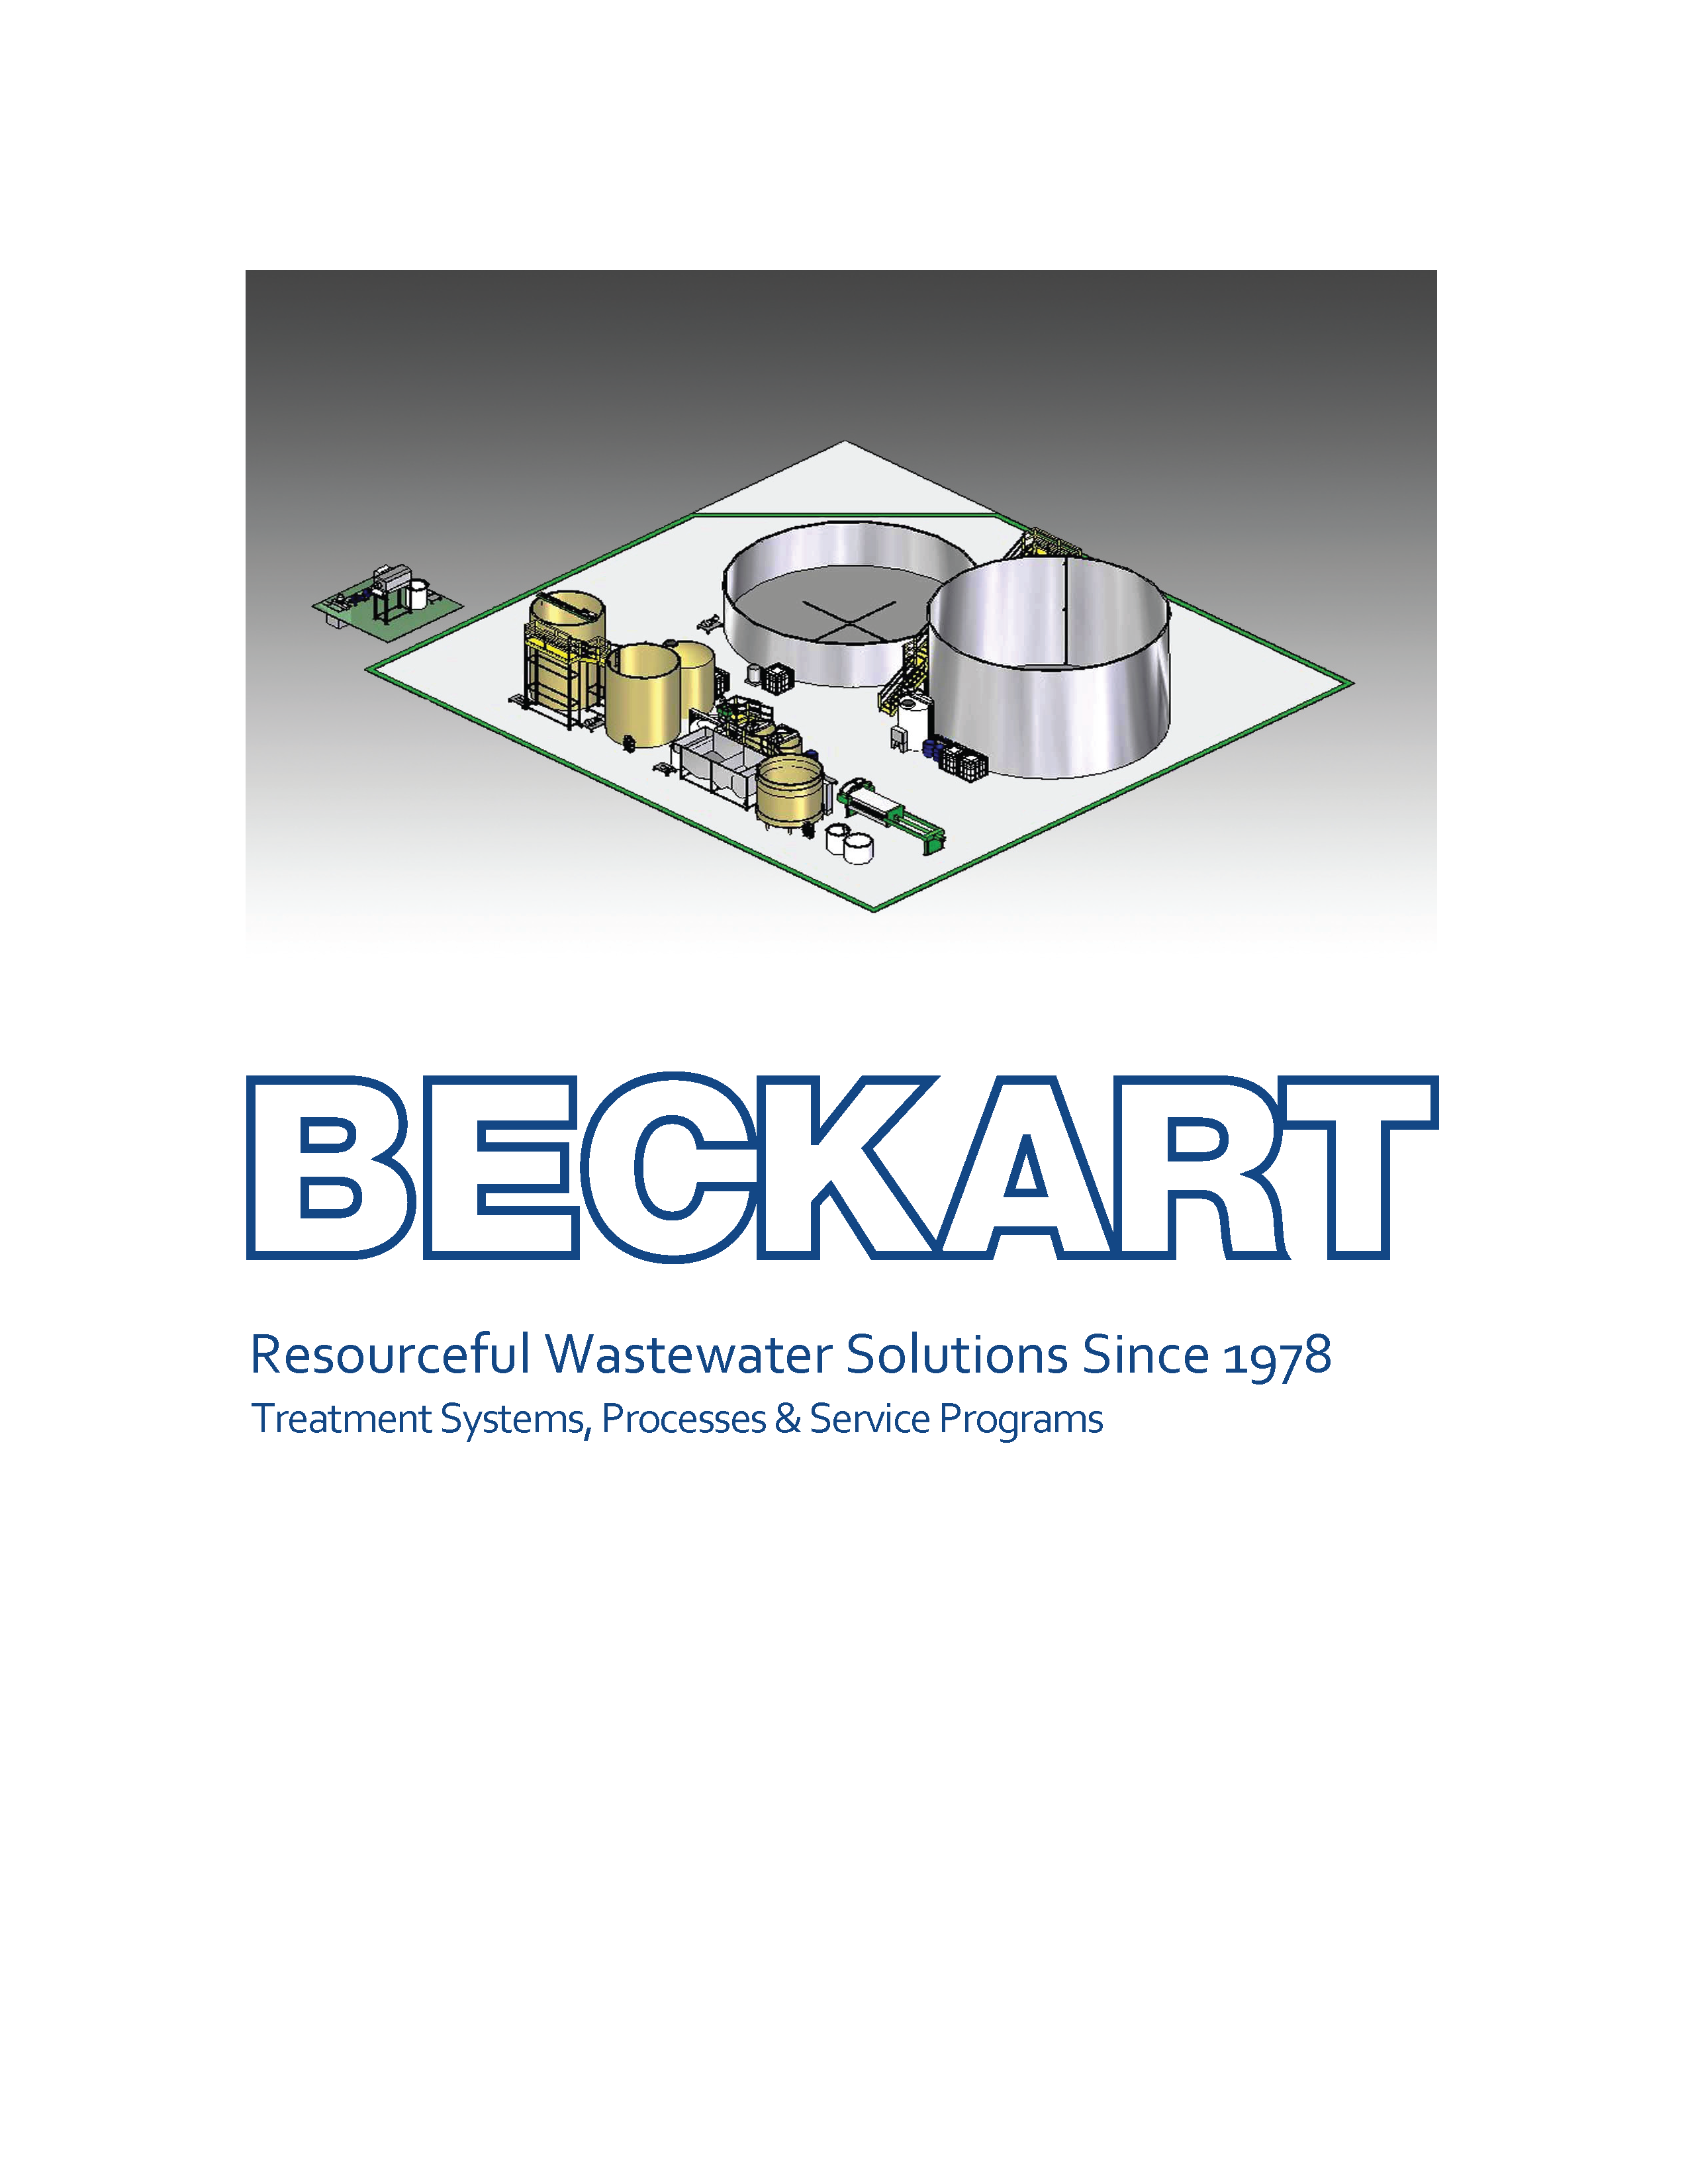 Read more about Beckart Solutions